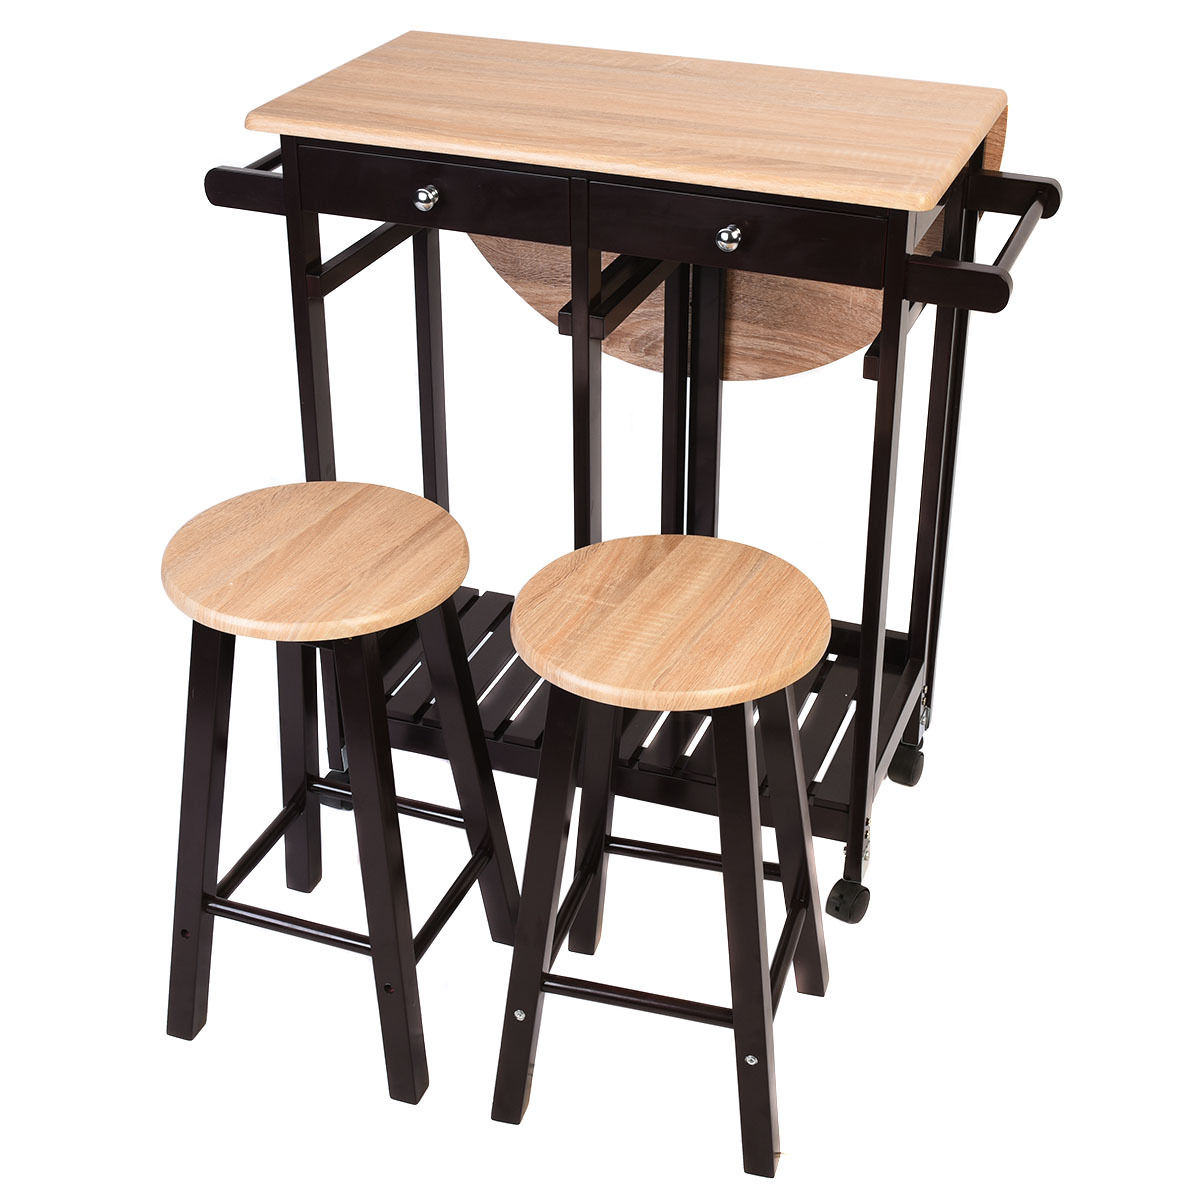 Kitchen Island Cart With Stools drop-leaf kitchen carts